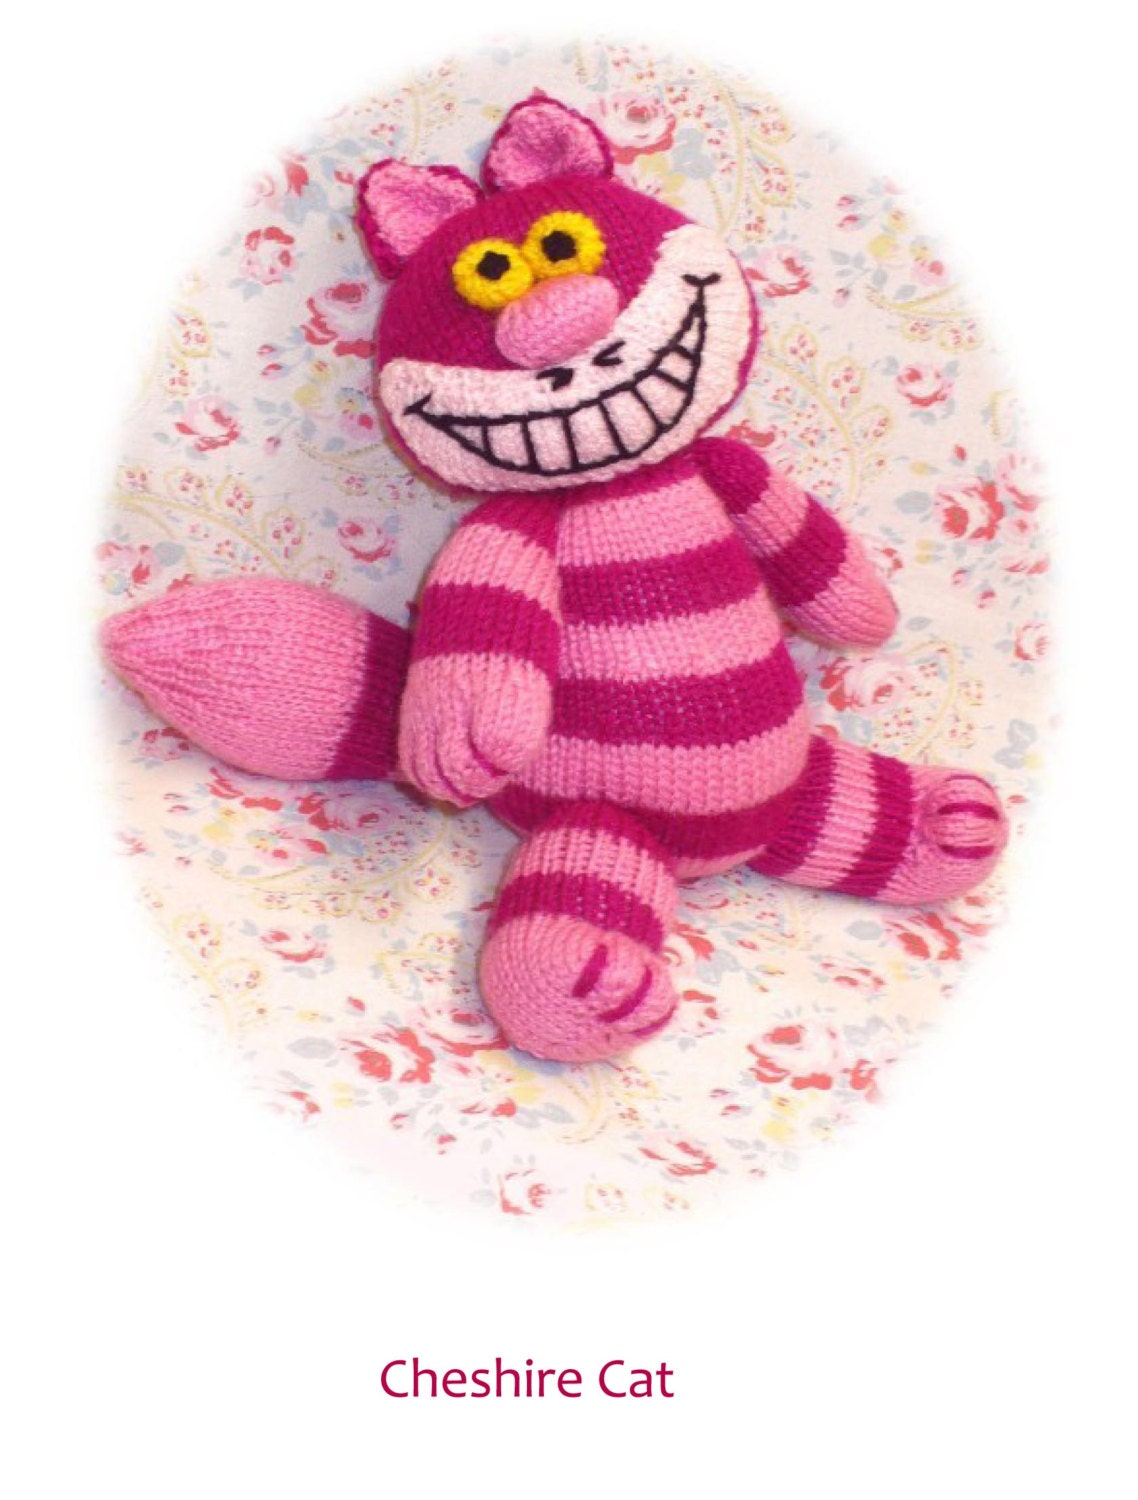 Cheshire Cat Amigurumi Crochet Pattern Free : cheshire cat PDF email knitting pattern alice in wonderland